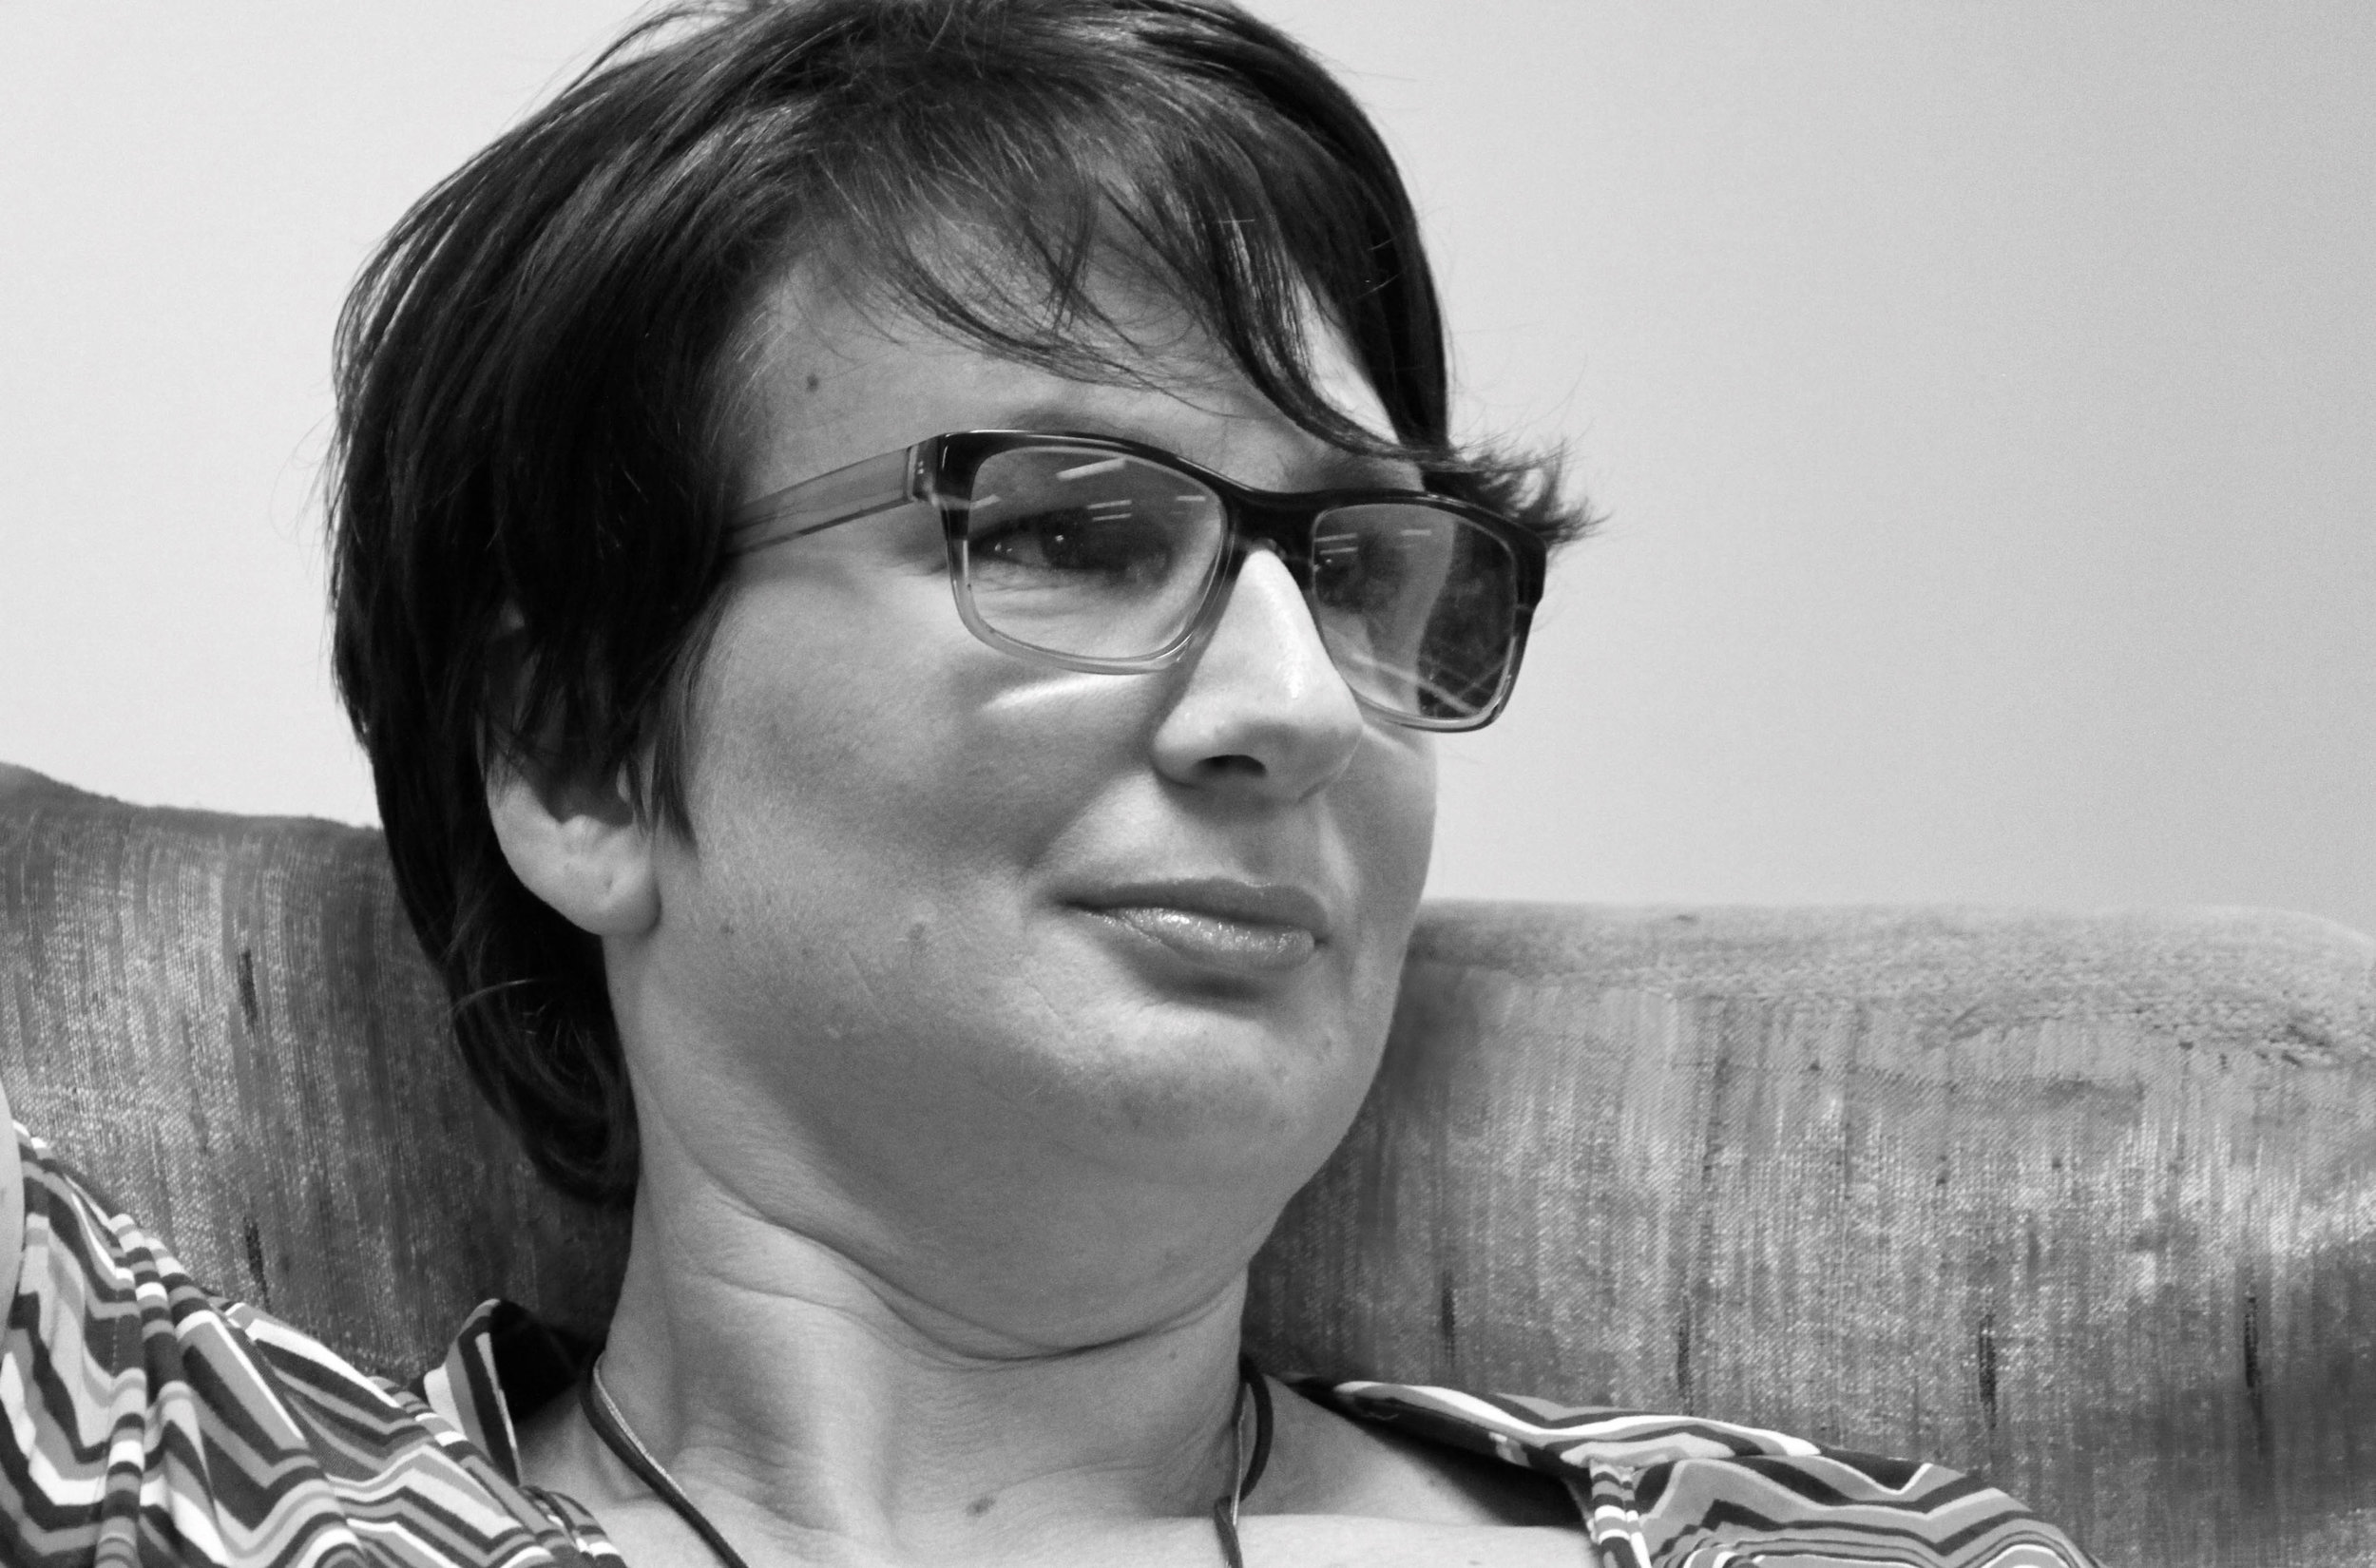 A woman's face is shown close up. She wears horn-rimmed reading glasses. Her mouth is closed not smiling, not frowning, she leans her head slightly back on a couch while she listens to a speaker out of shot.